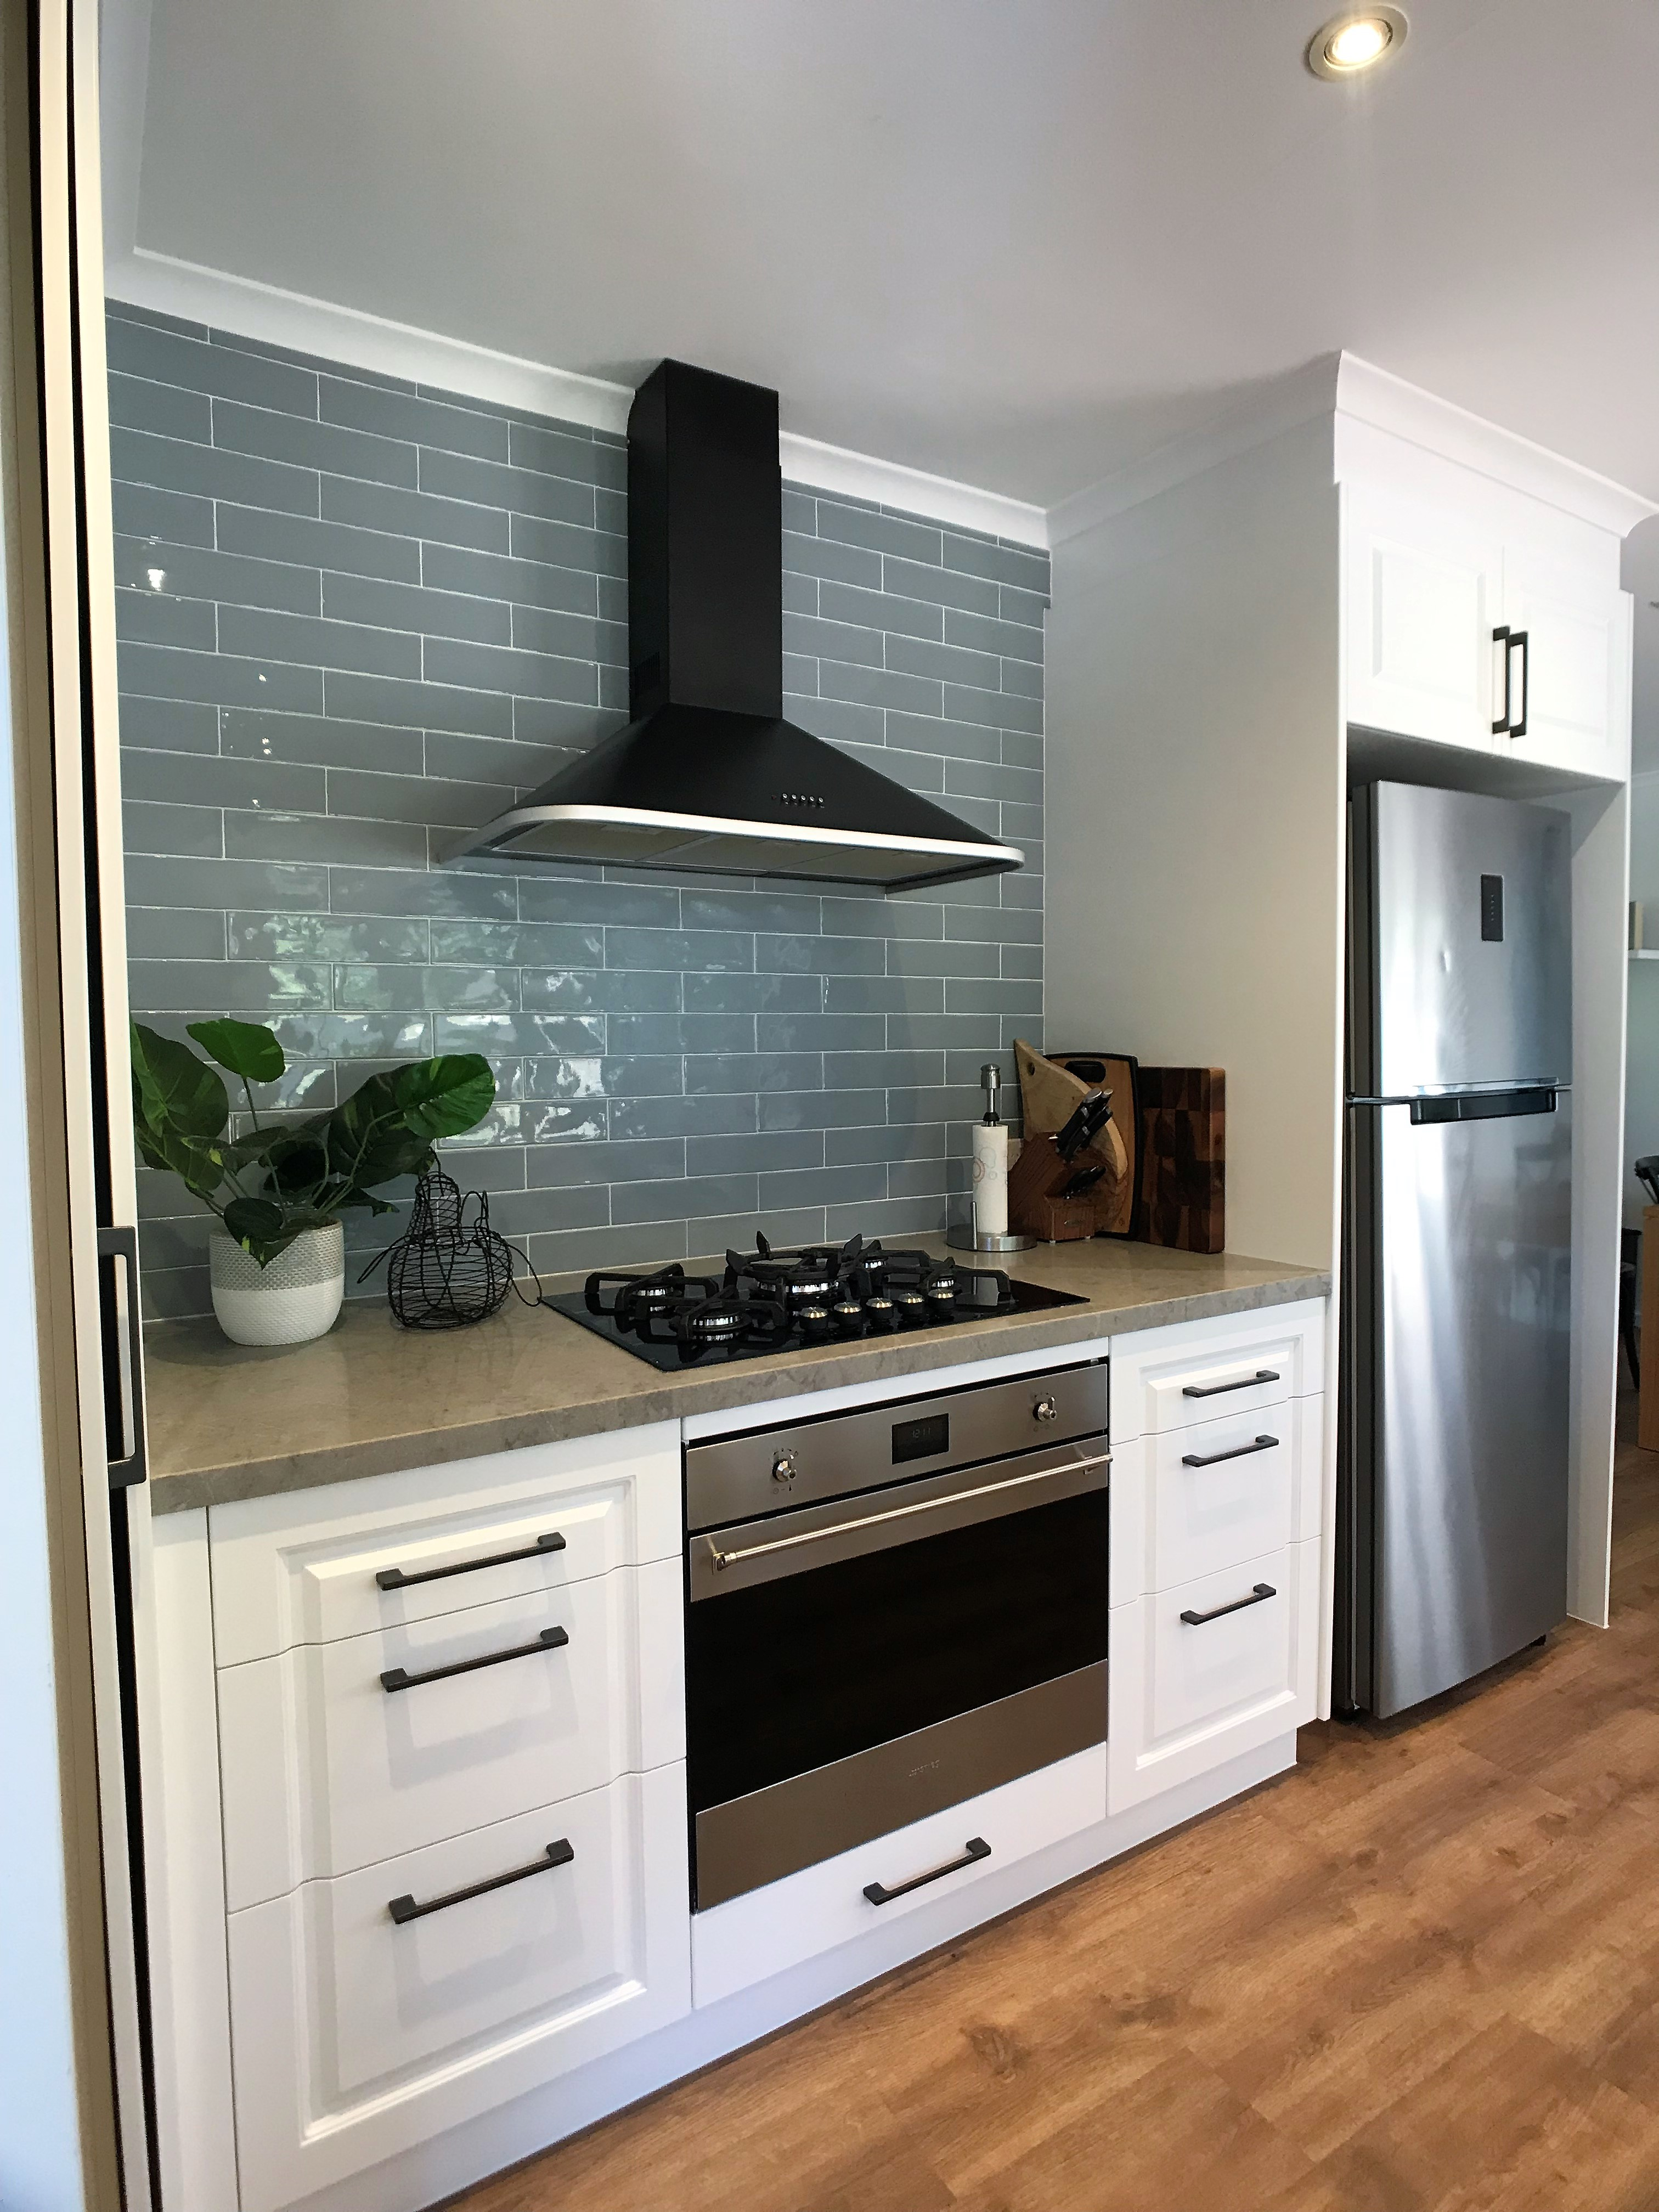 Modular kitchen renovated by Paramount Creations.